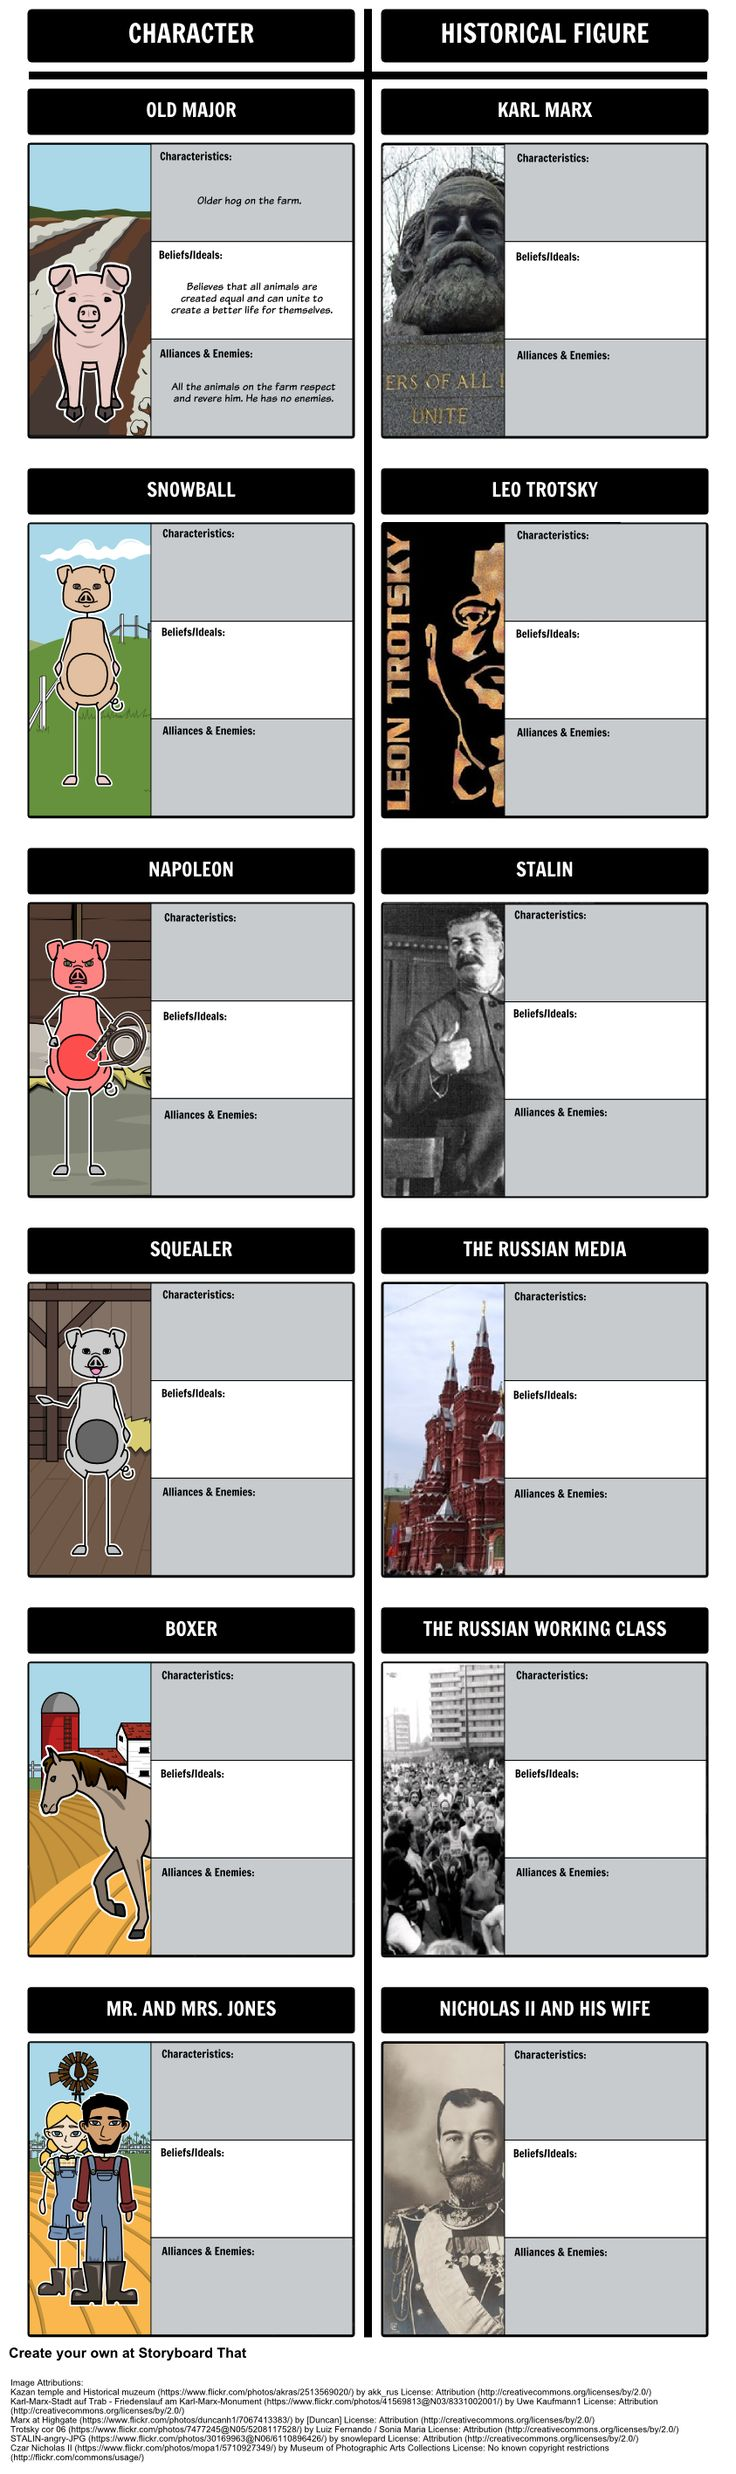 best ideas about animal farm george orwell animal farm by george orwell character comparison using a t chart graphic organizer students can compare animal farm characters to their allegorical